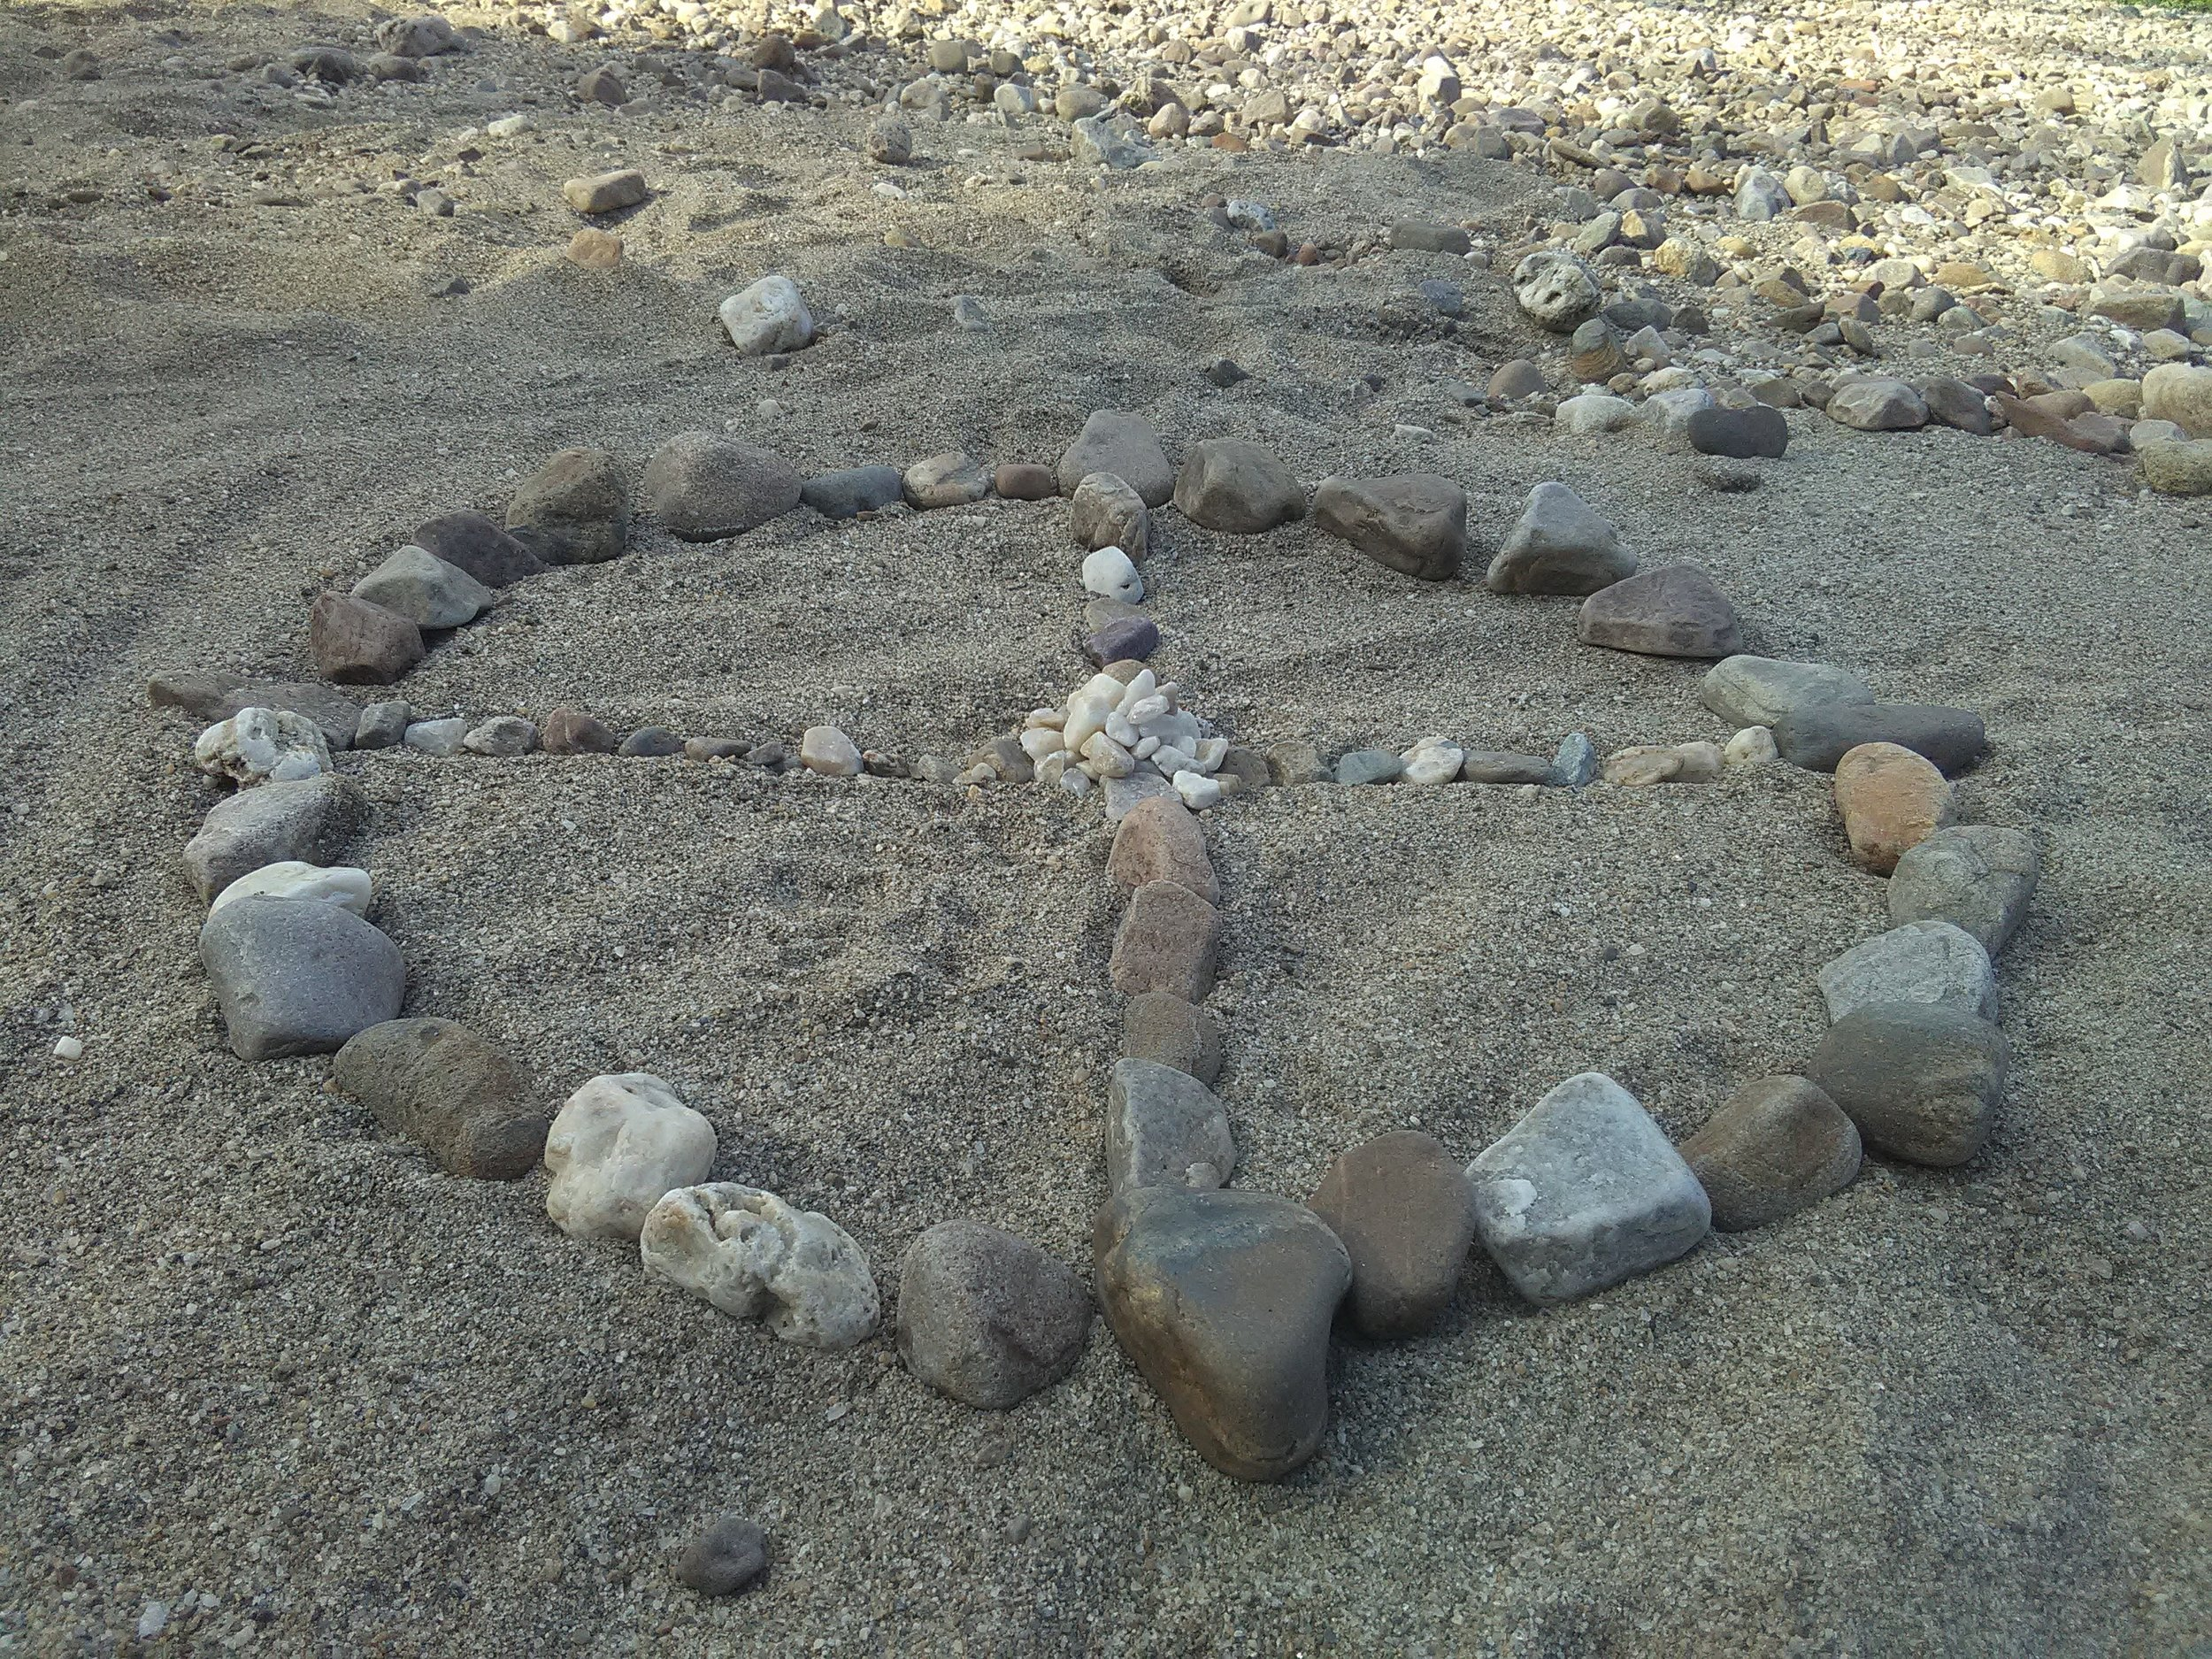 A medicine wheel or one of the many Sacred Circles of Life.